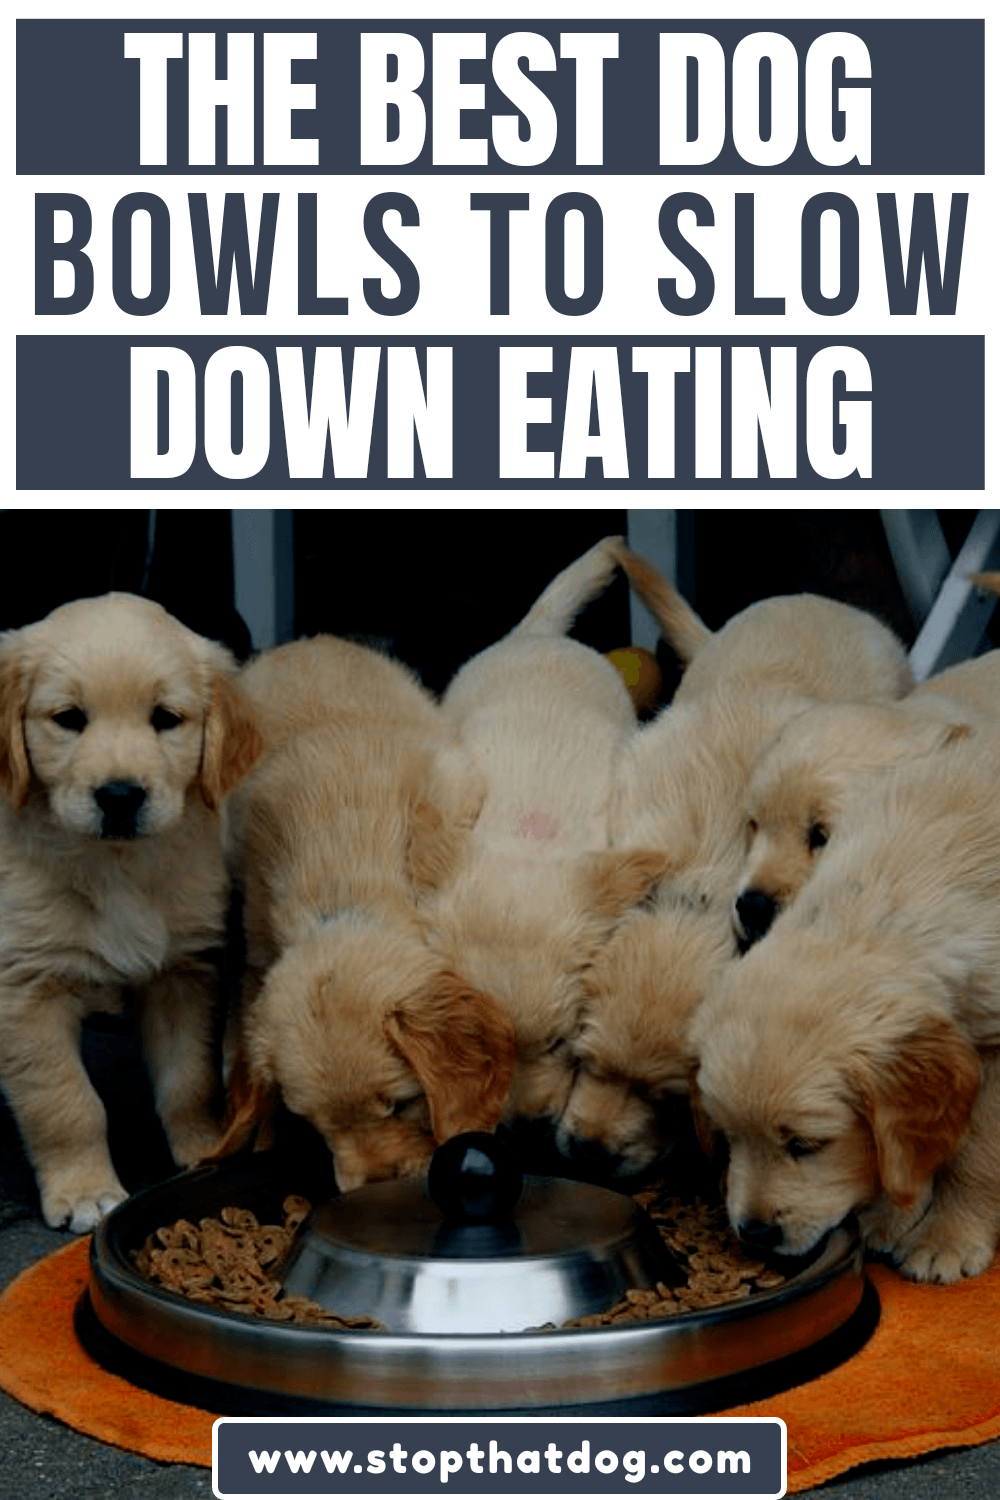 Dog eating too fast? Slow feeder bowls can help. Our guide reveals the best slow feeding dog bowls on the market. Pick one of these and you can\'t go wrong.